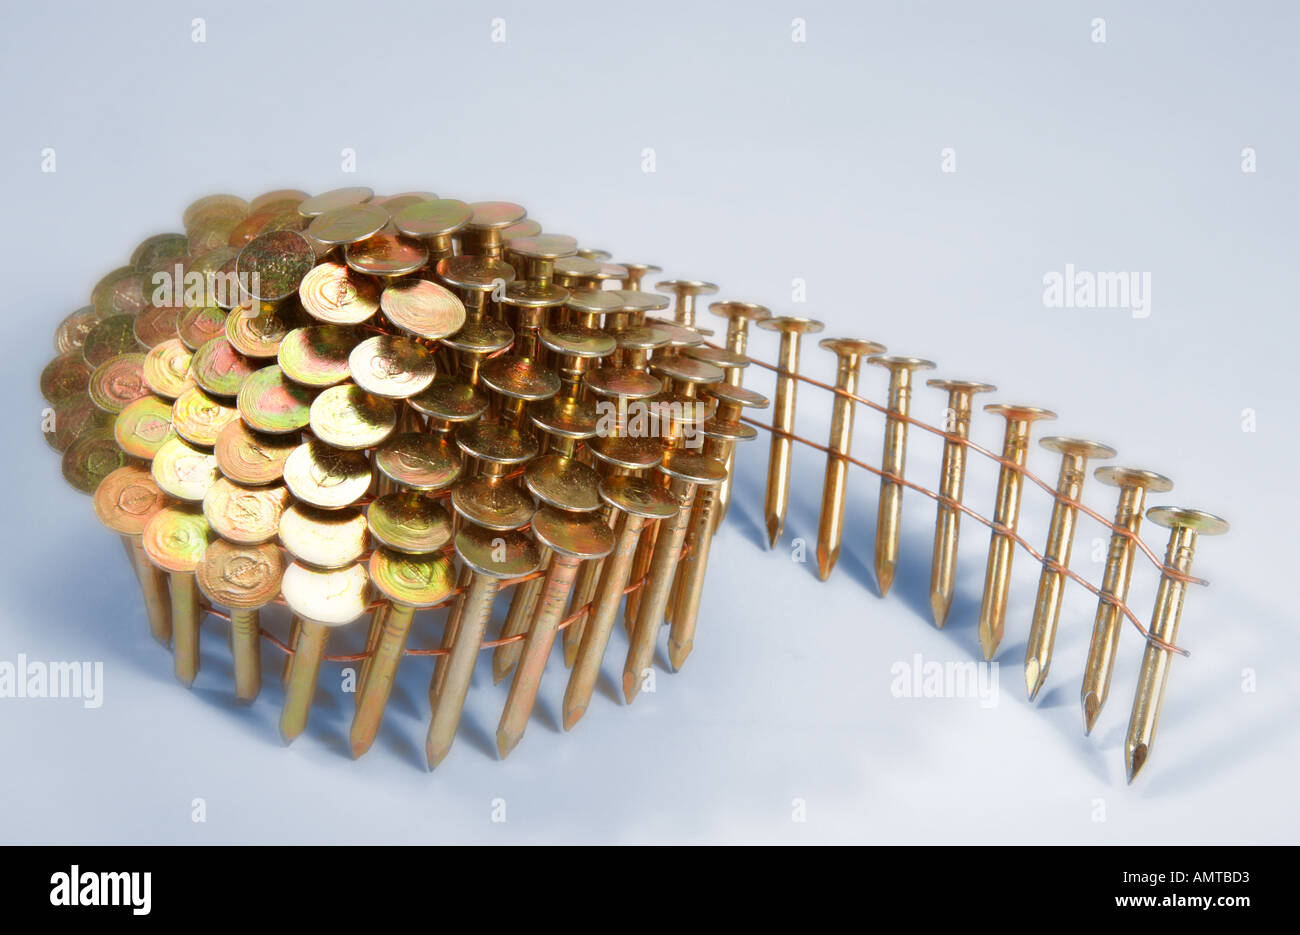 A roll of nails made for a builder's nail gun - Stock Image